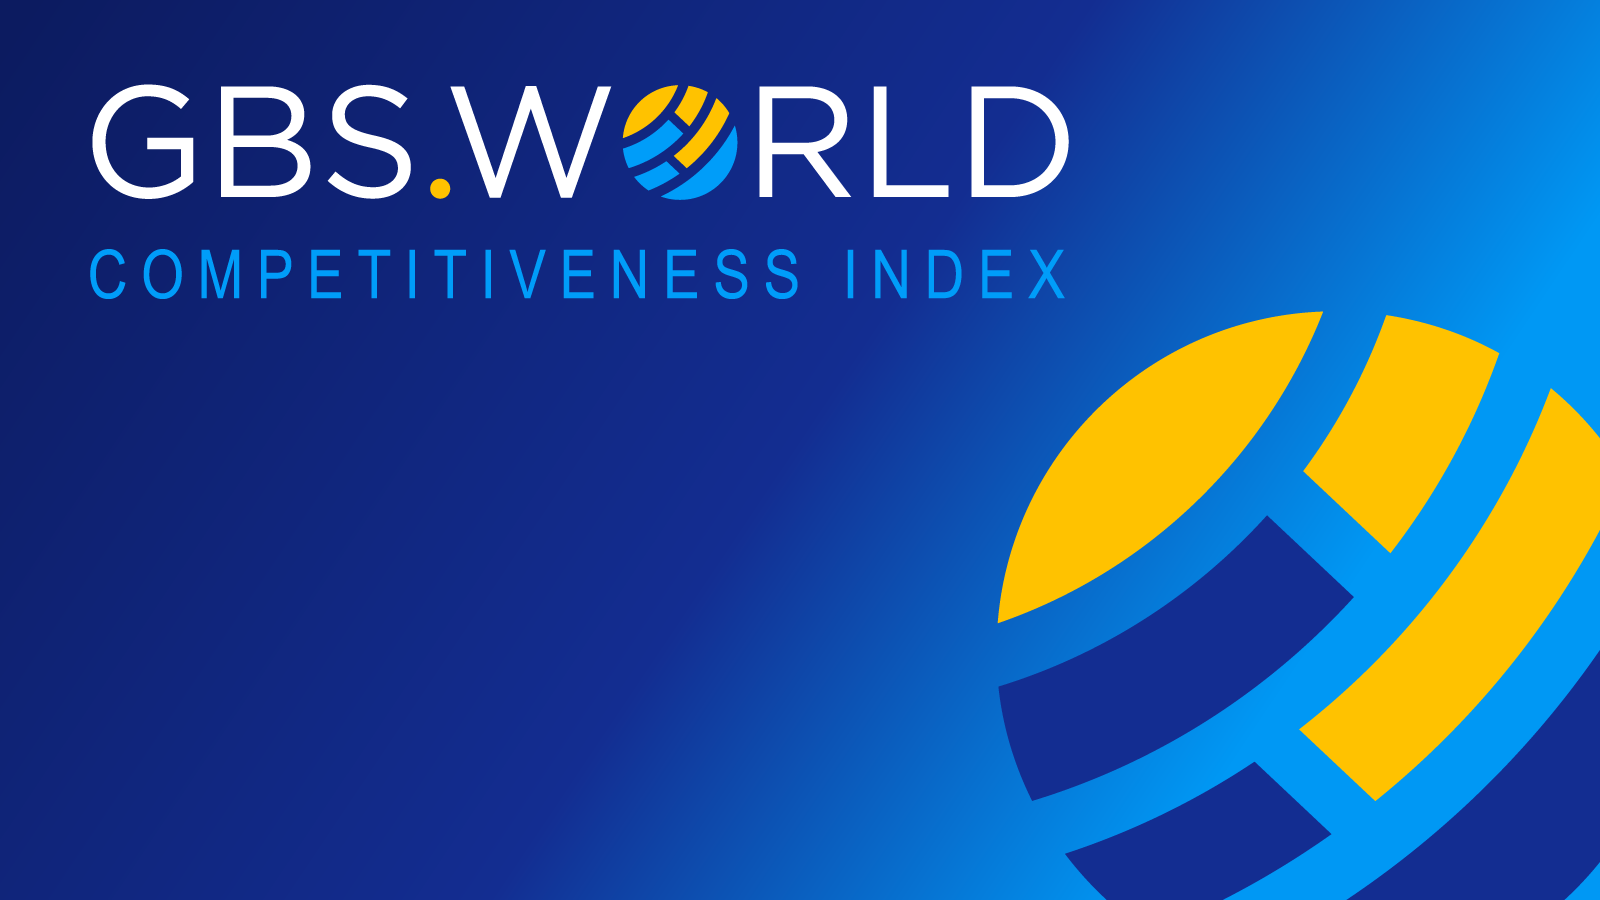 GBS World Competitiveness Index provides first global rankings